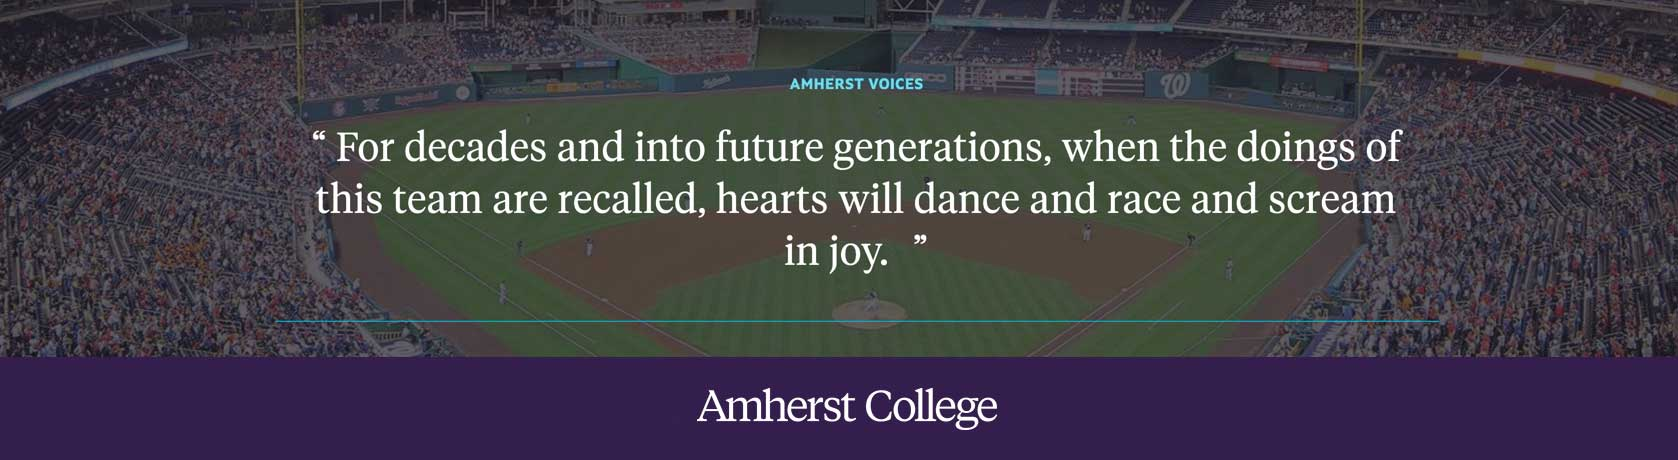 Quote by Thomas Boswell '69 about the Washington Nationals winning the world series